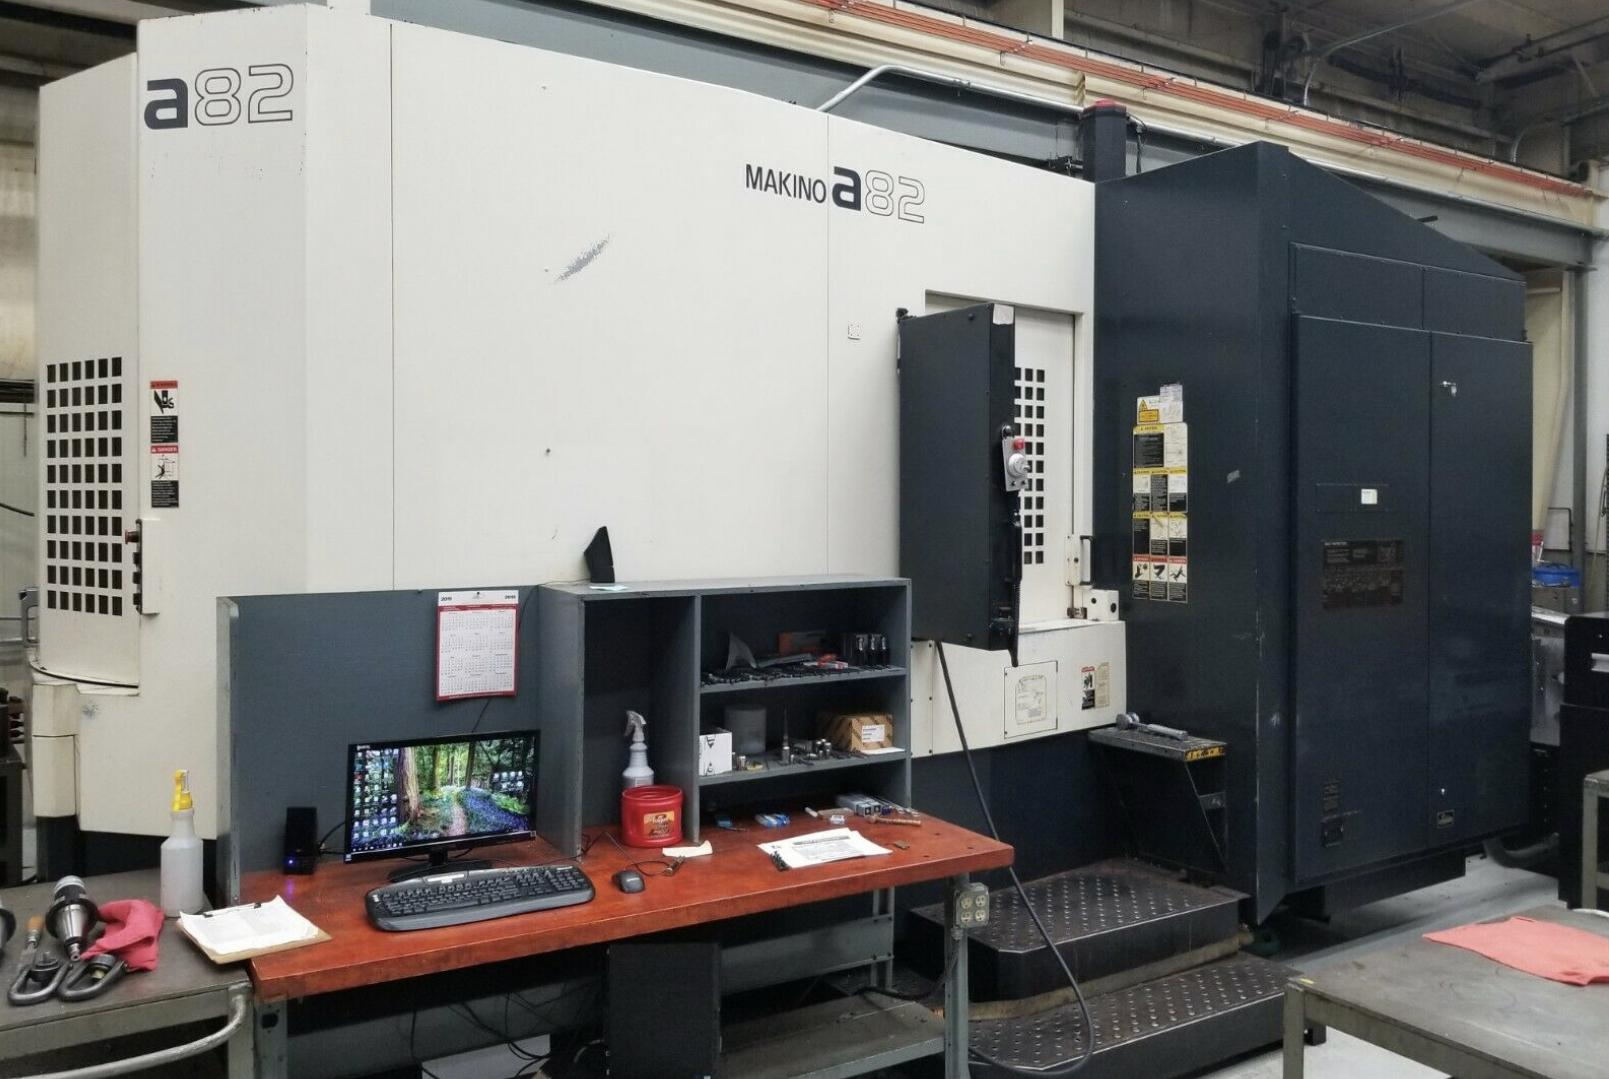 2009 Makino A82 - Horizontal Machining Center